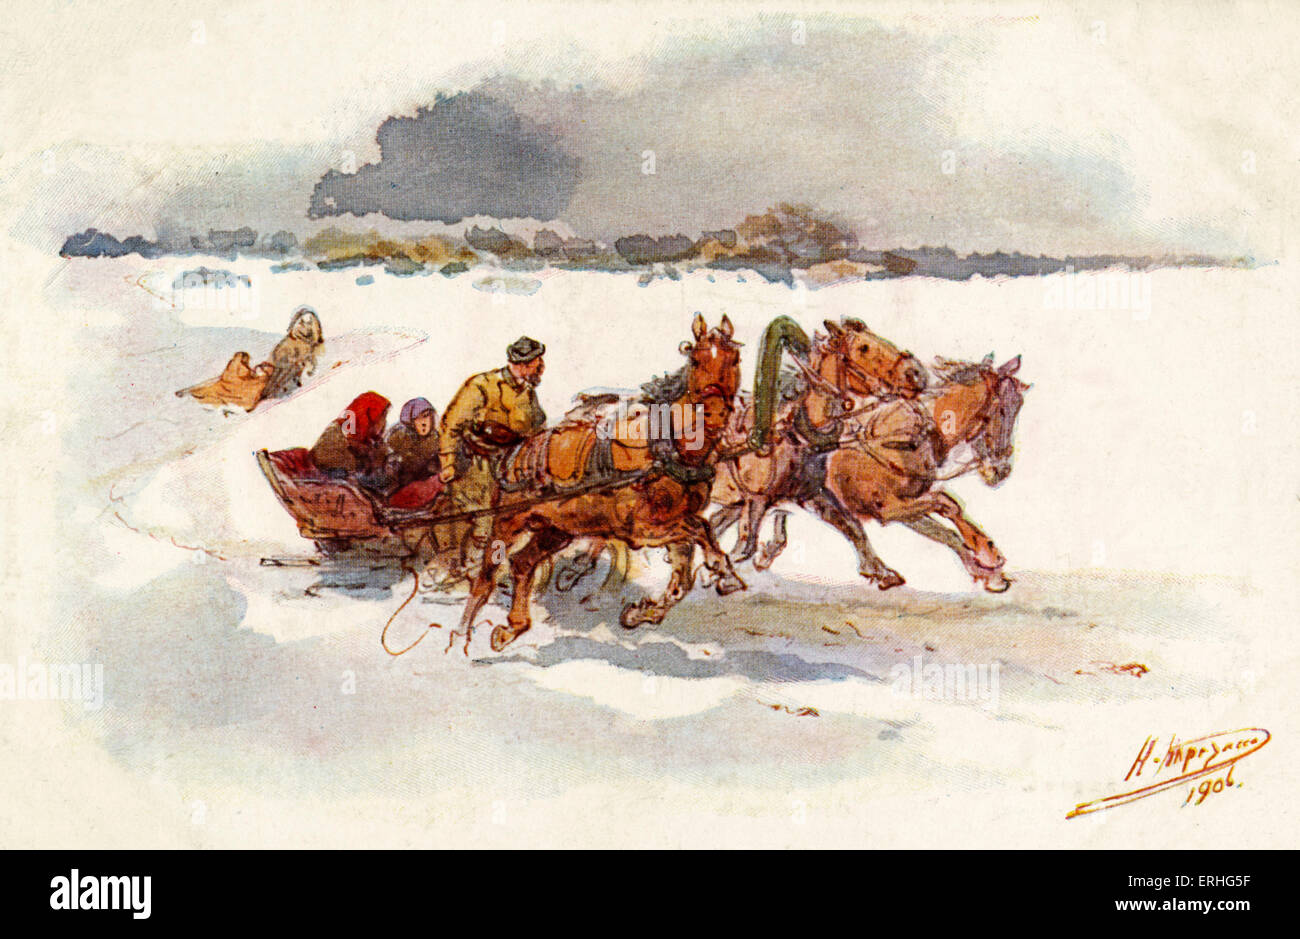 Russian sleigh scene in winter, sleigh being drawn by three horses. Painting by N Karasin, early 20th century. - Stock Image